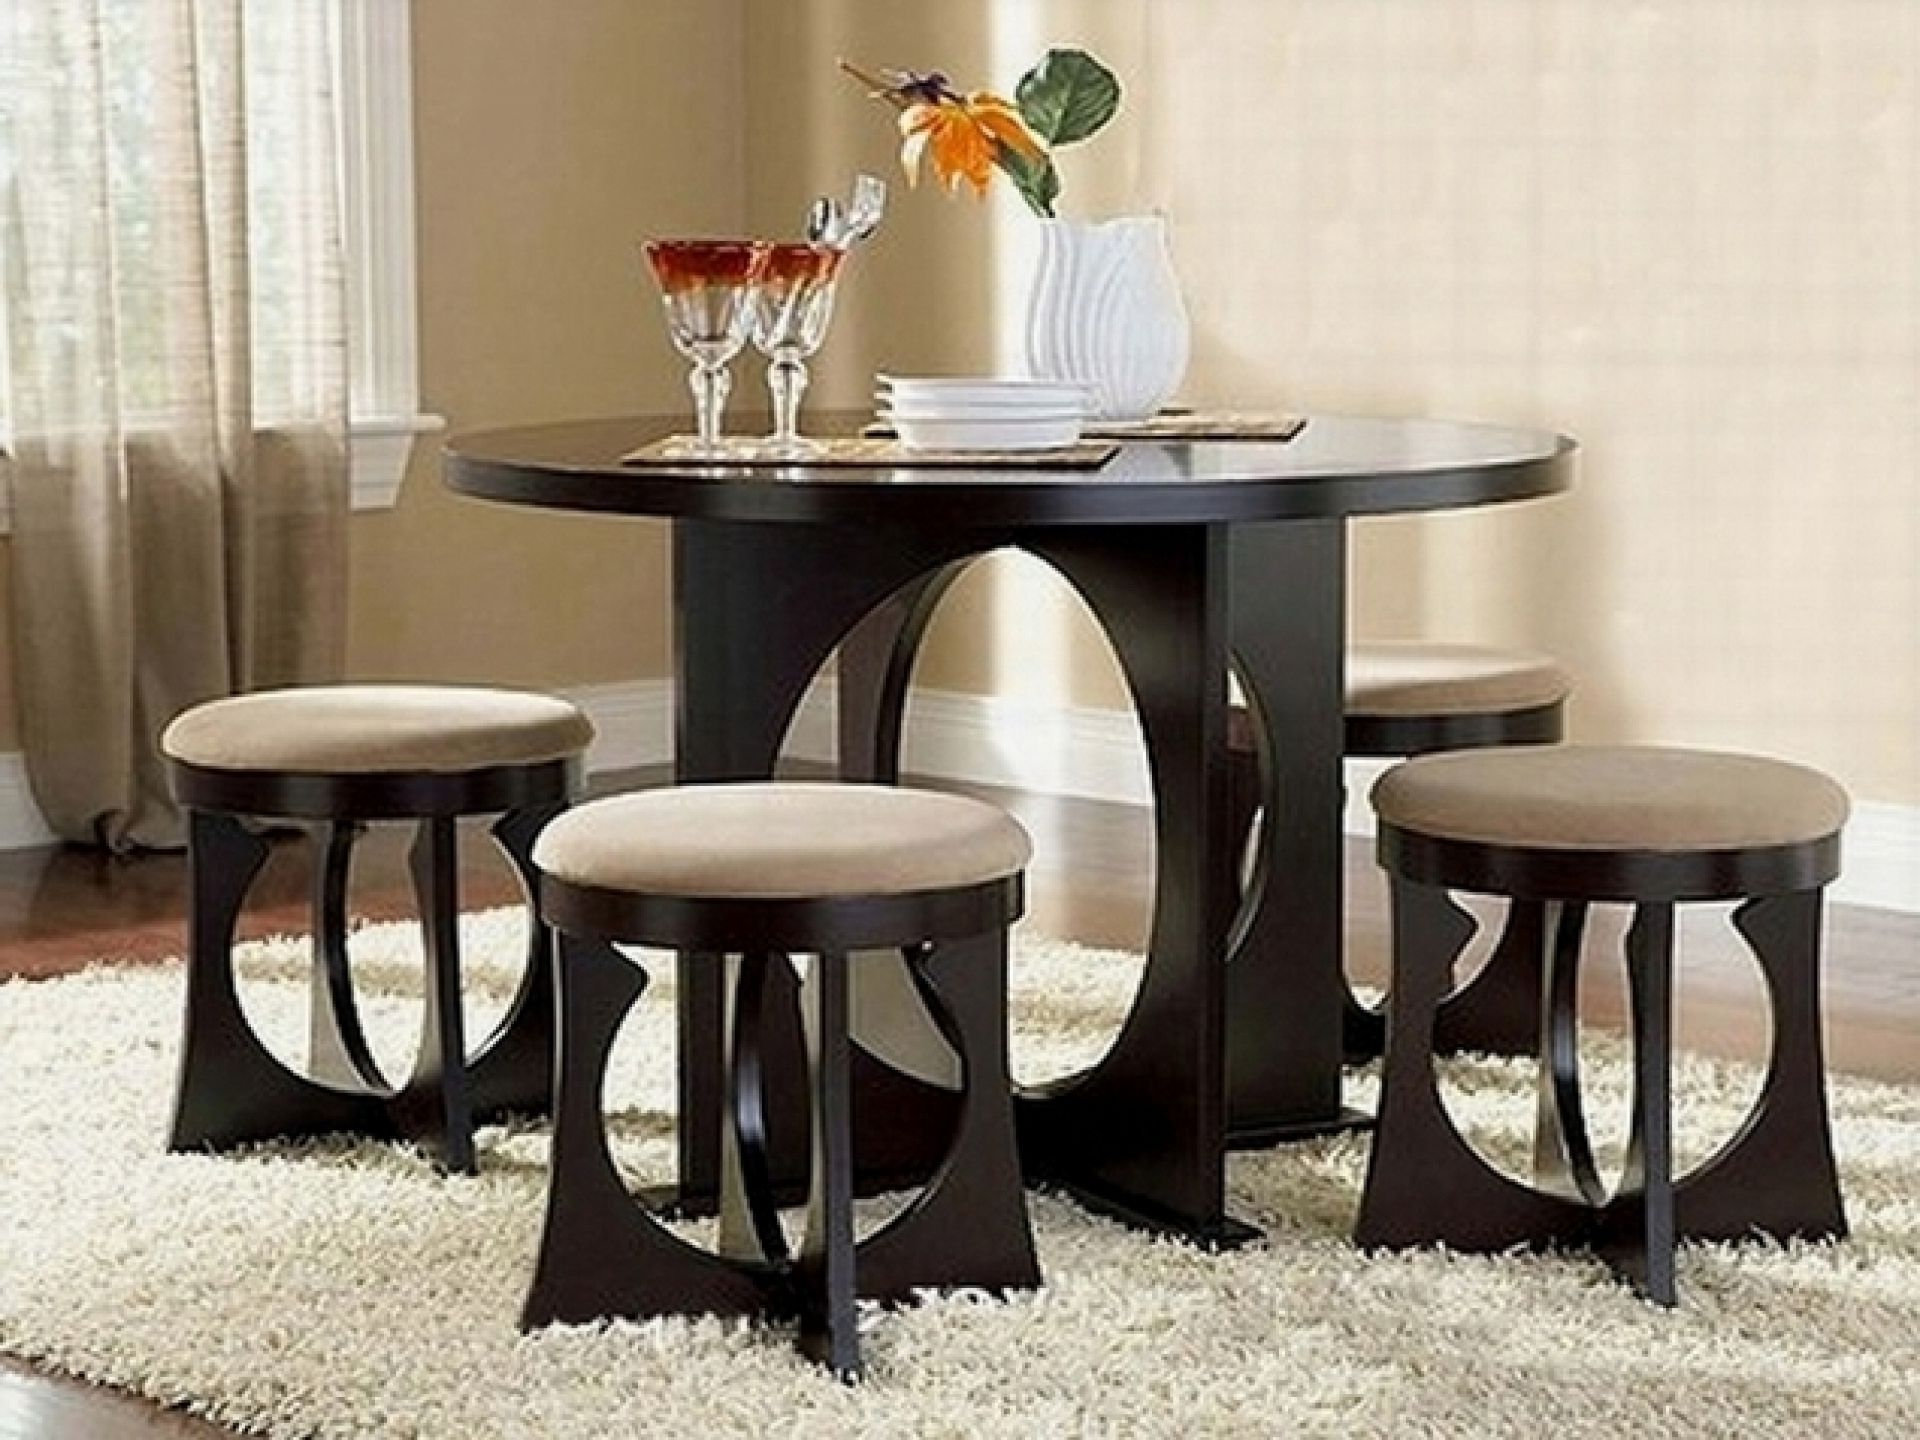 Dining Table Sets For Apartments  Httpfmufpi  Pinterest Glamorous Dining Room Table Sets For Small Spaces Decorating Inspiration